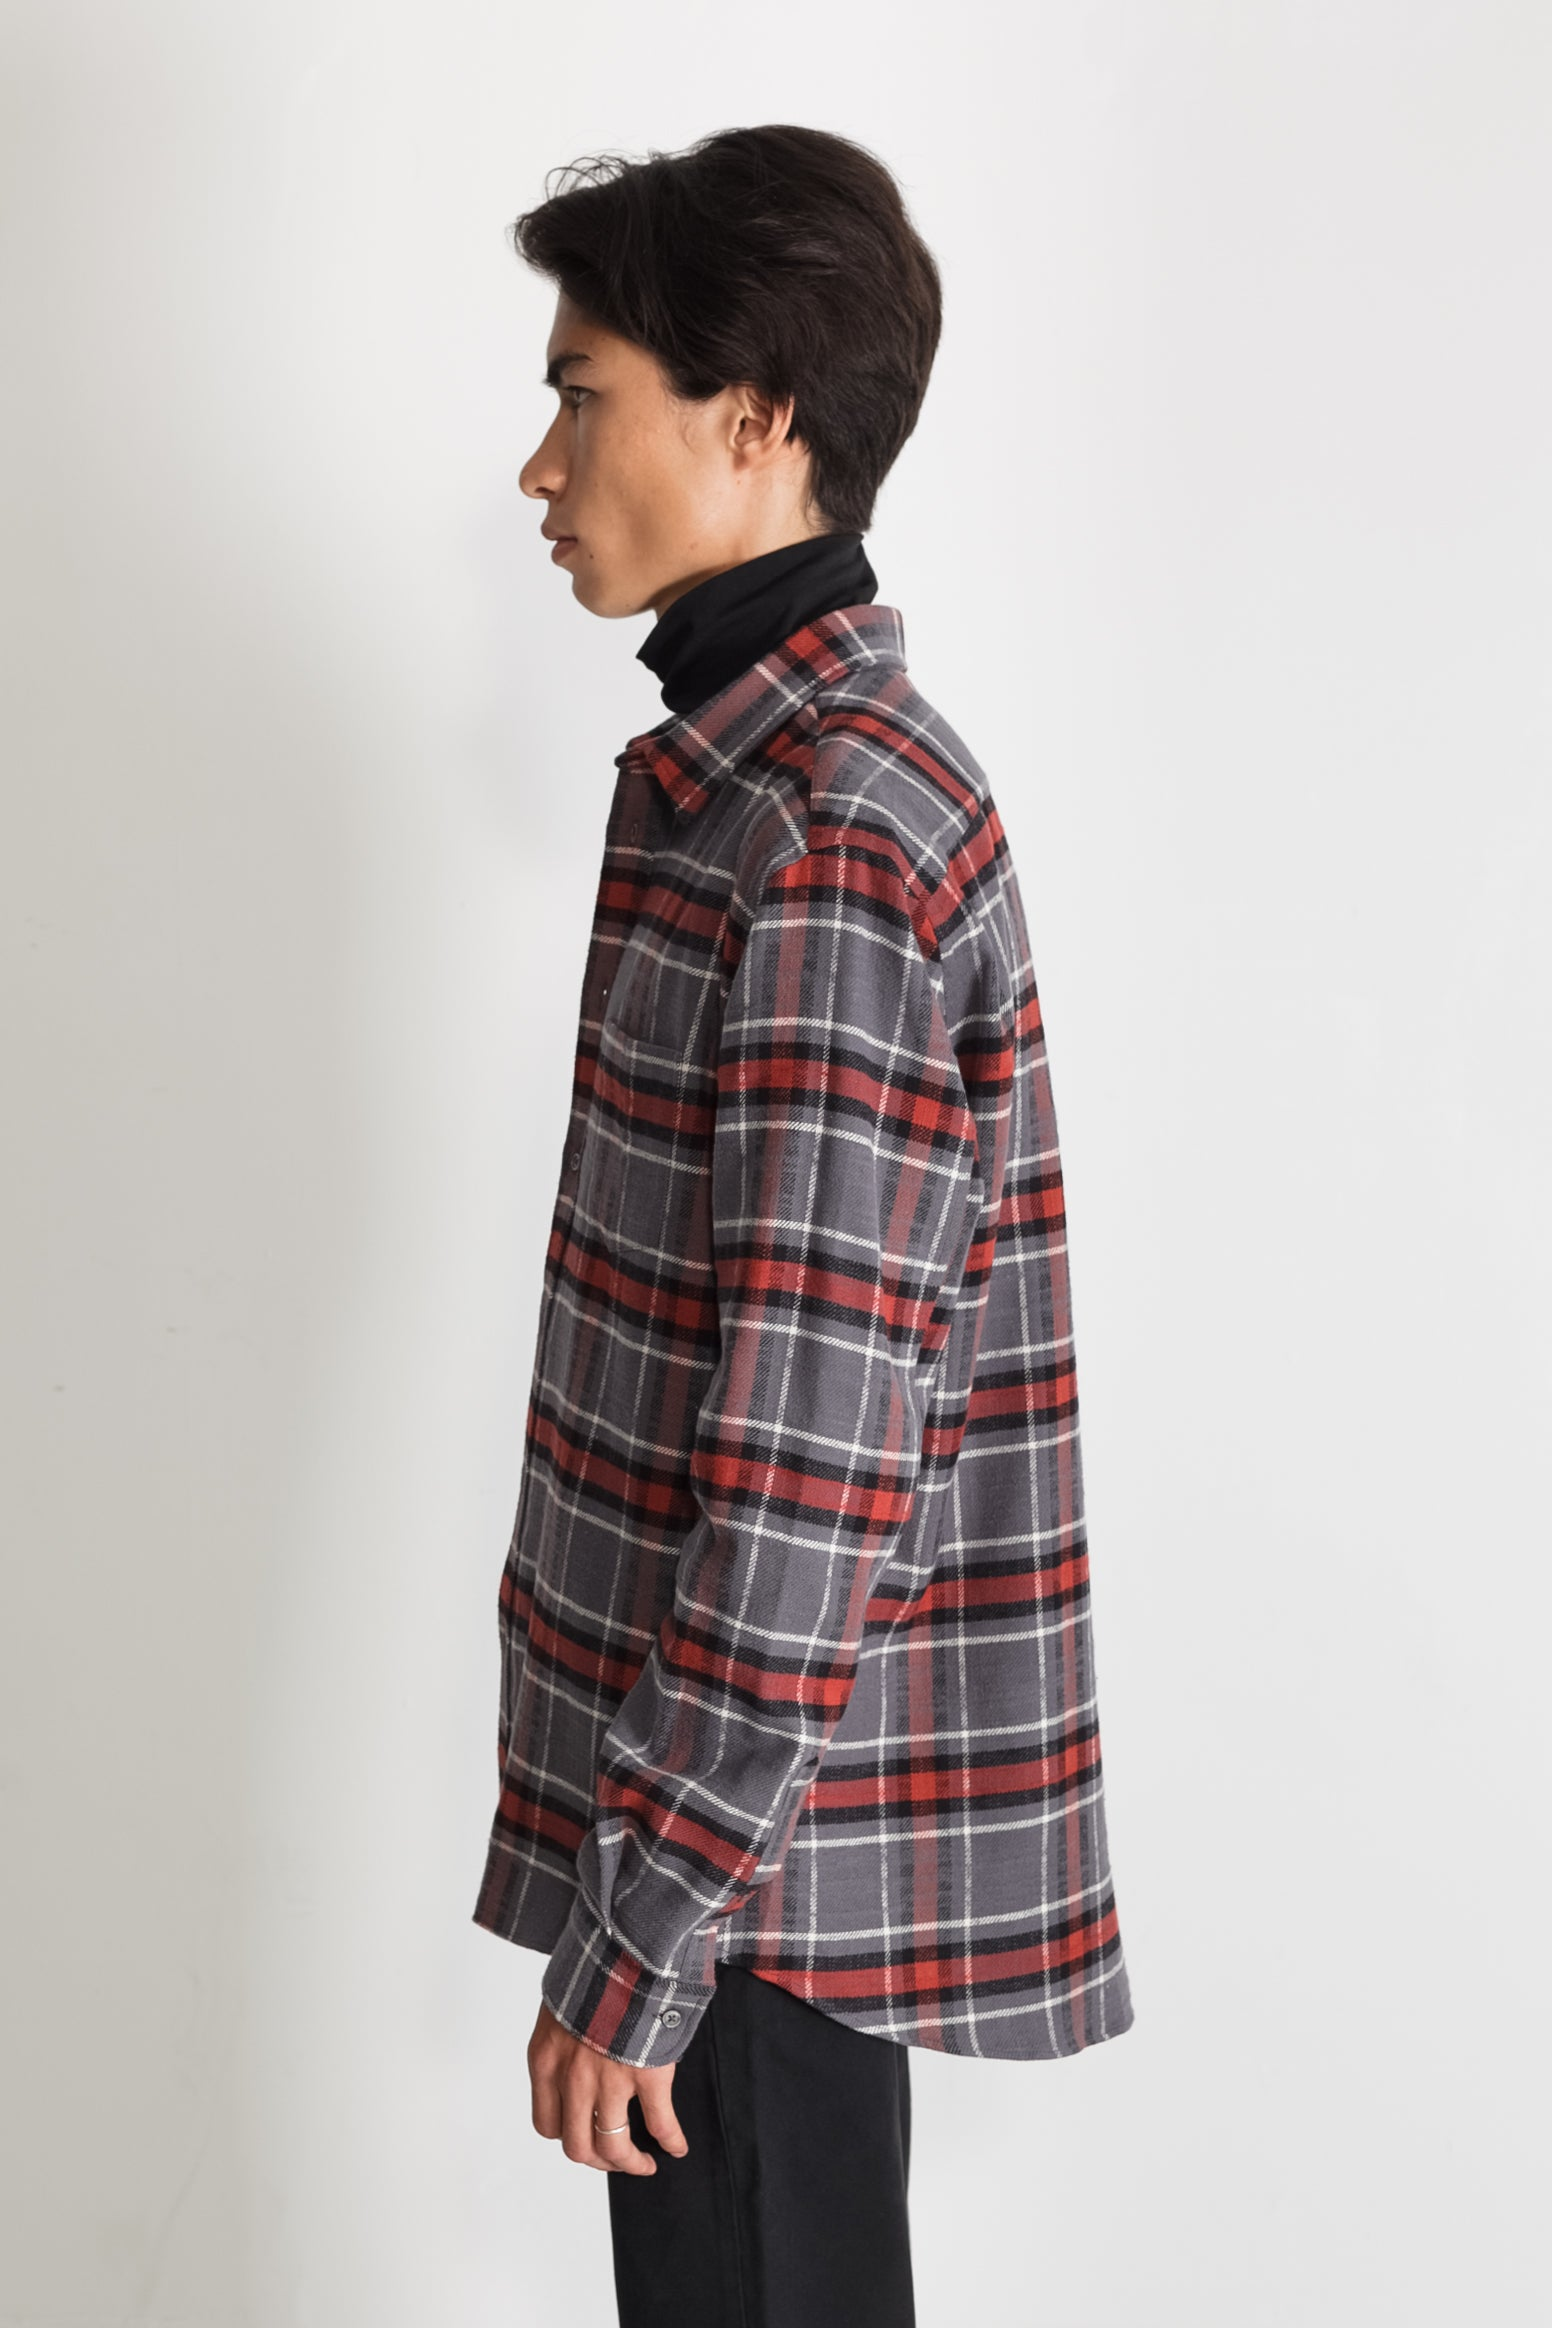 Japanese Cassidy Plaid in Grey and Rust 03